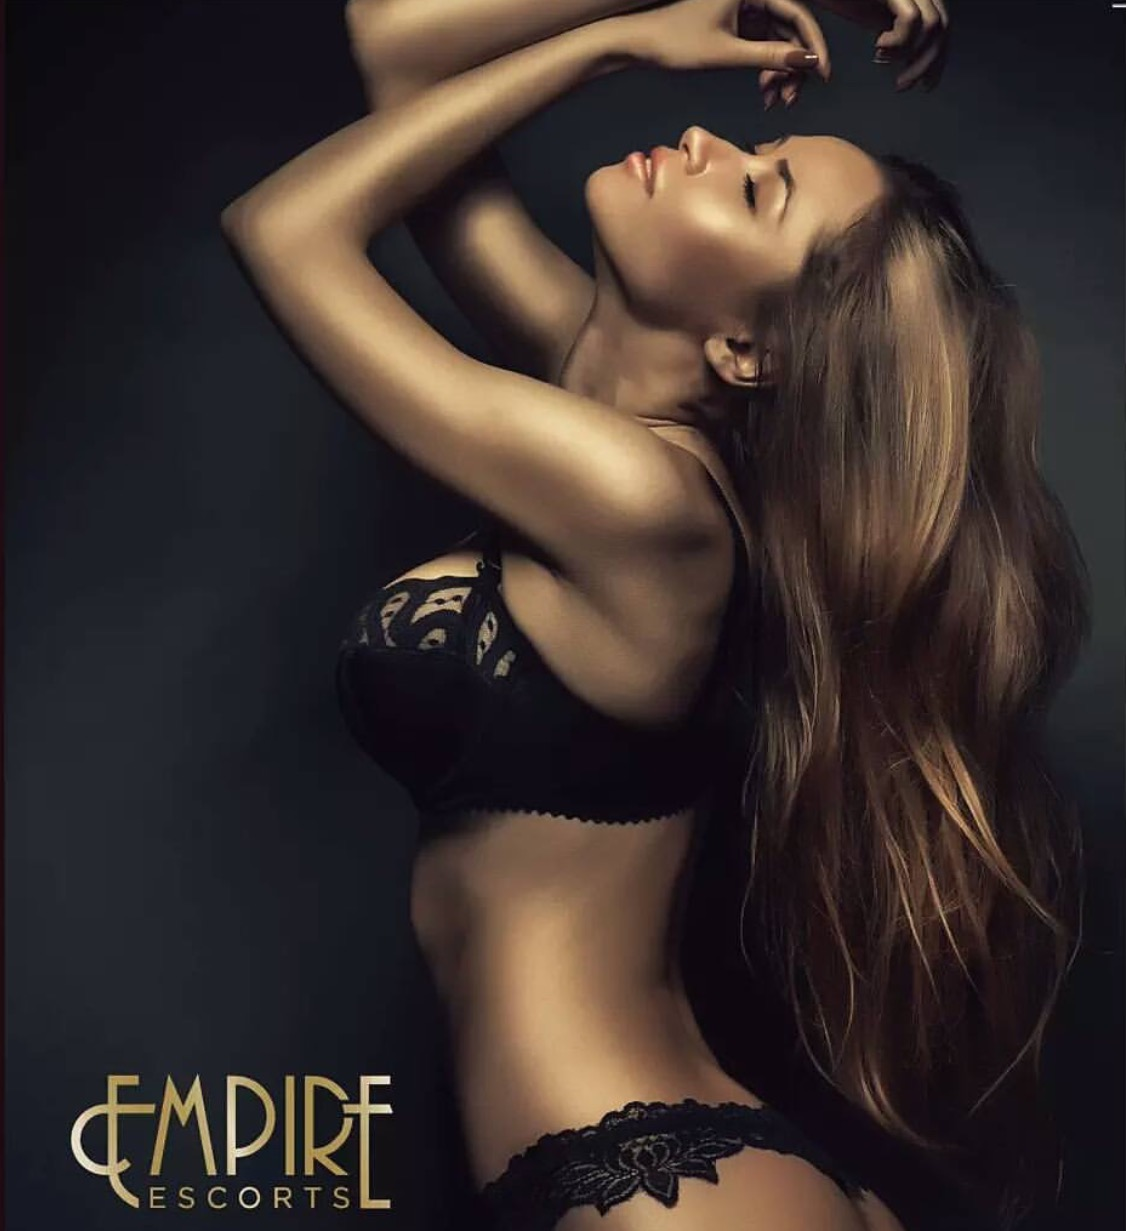 Empire Escorts Sydney in Sydney